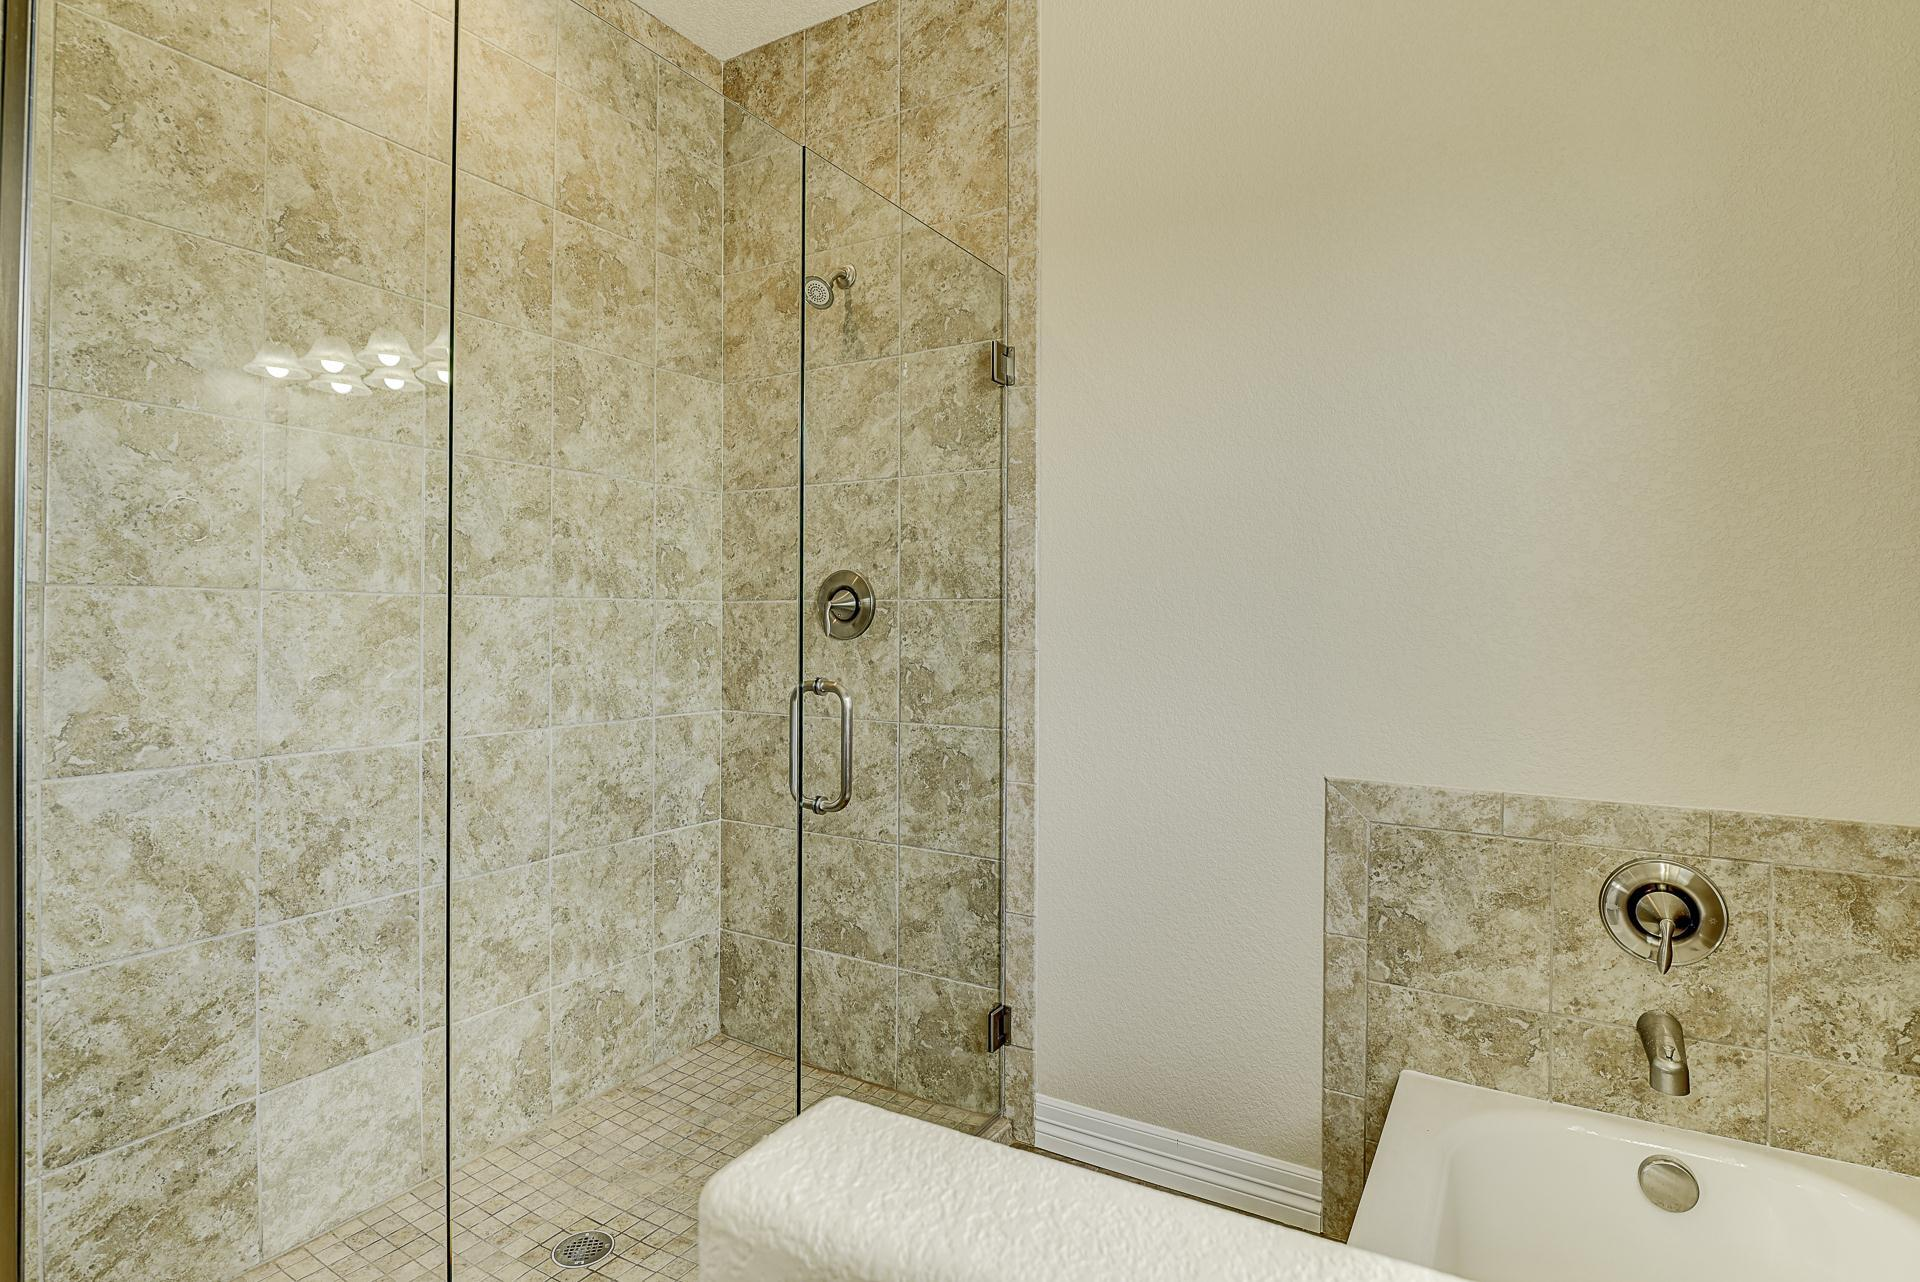 Bathroom featured in the Larkspur By Powell Homes in Colorado Springs, CO